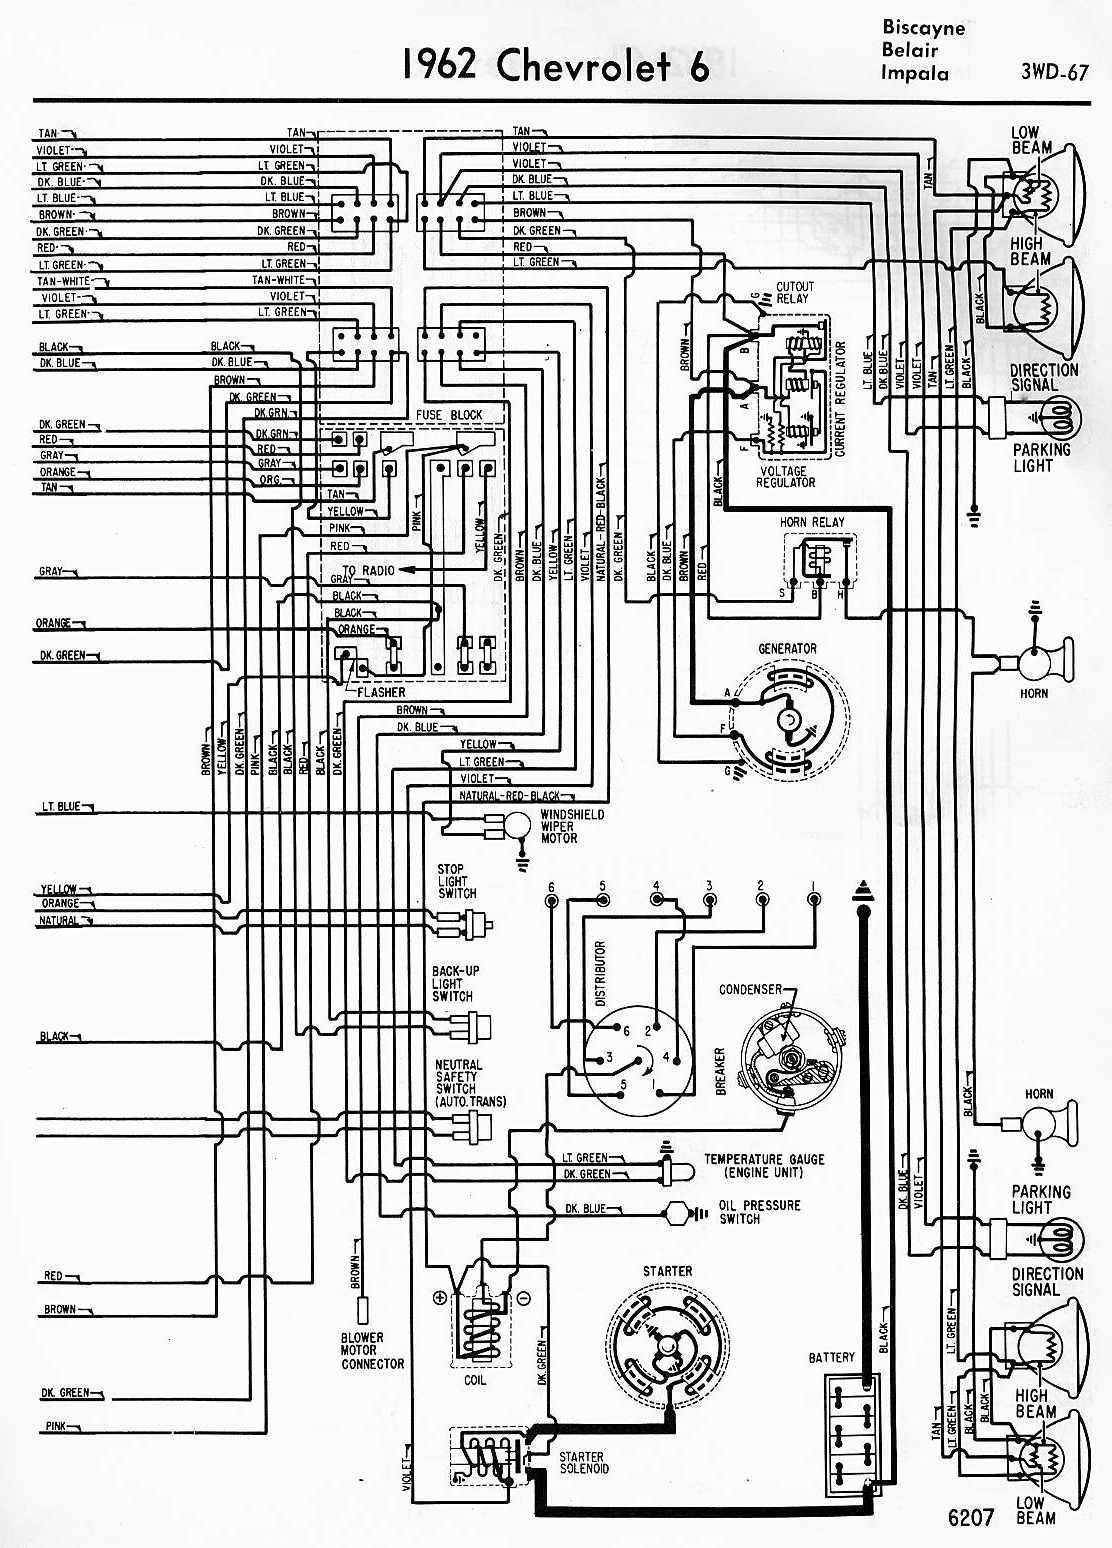 1958 chevy wiring diagram 5ac2c 67 impala convertible wiring diagram wiring resources 1958 chevrolet wiring diagram 67 impala convertible wiring diagram